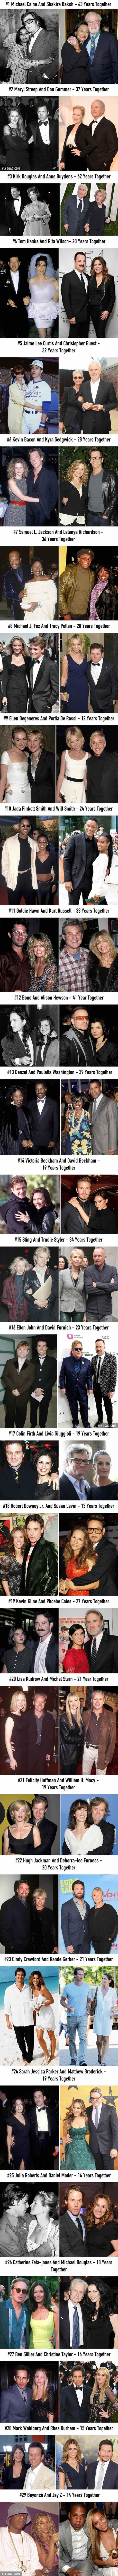 29-celeb-couples-to-restore-your-faith-in-love